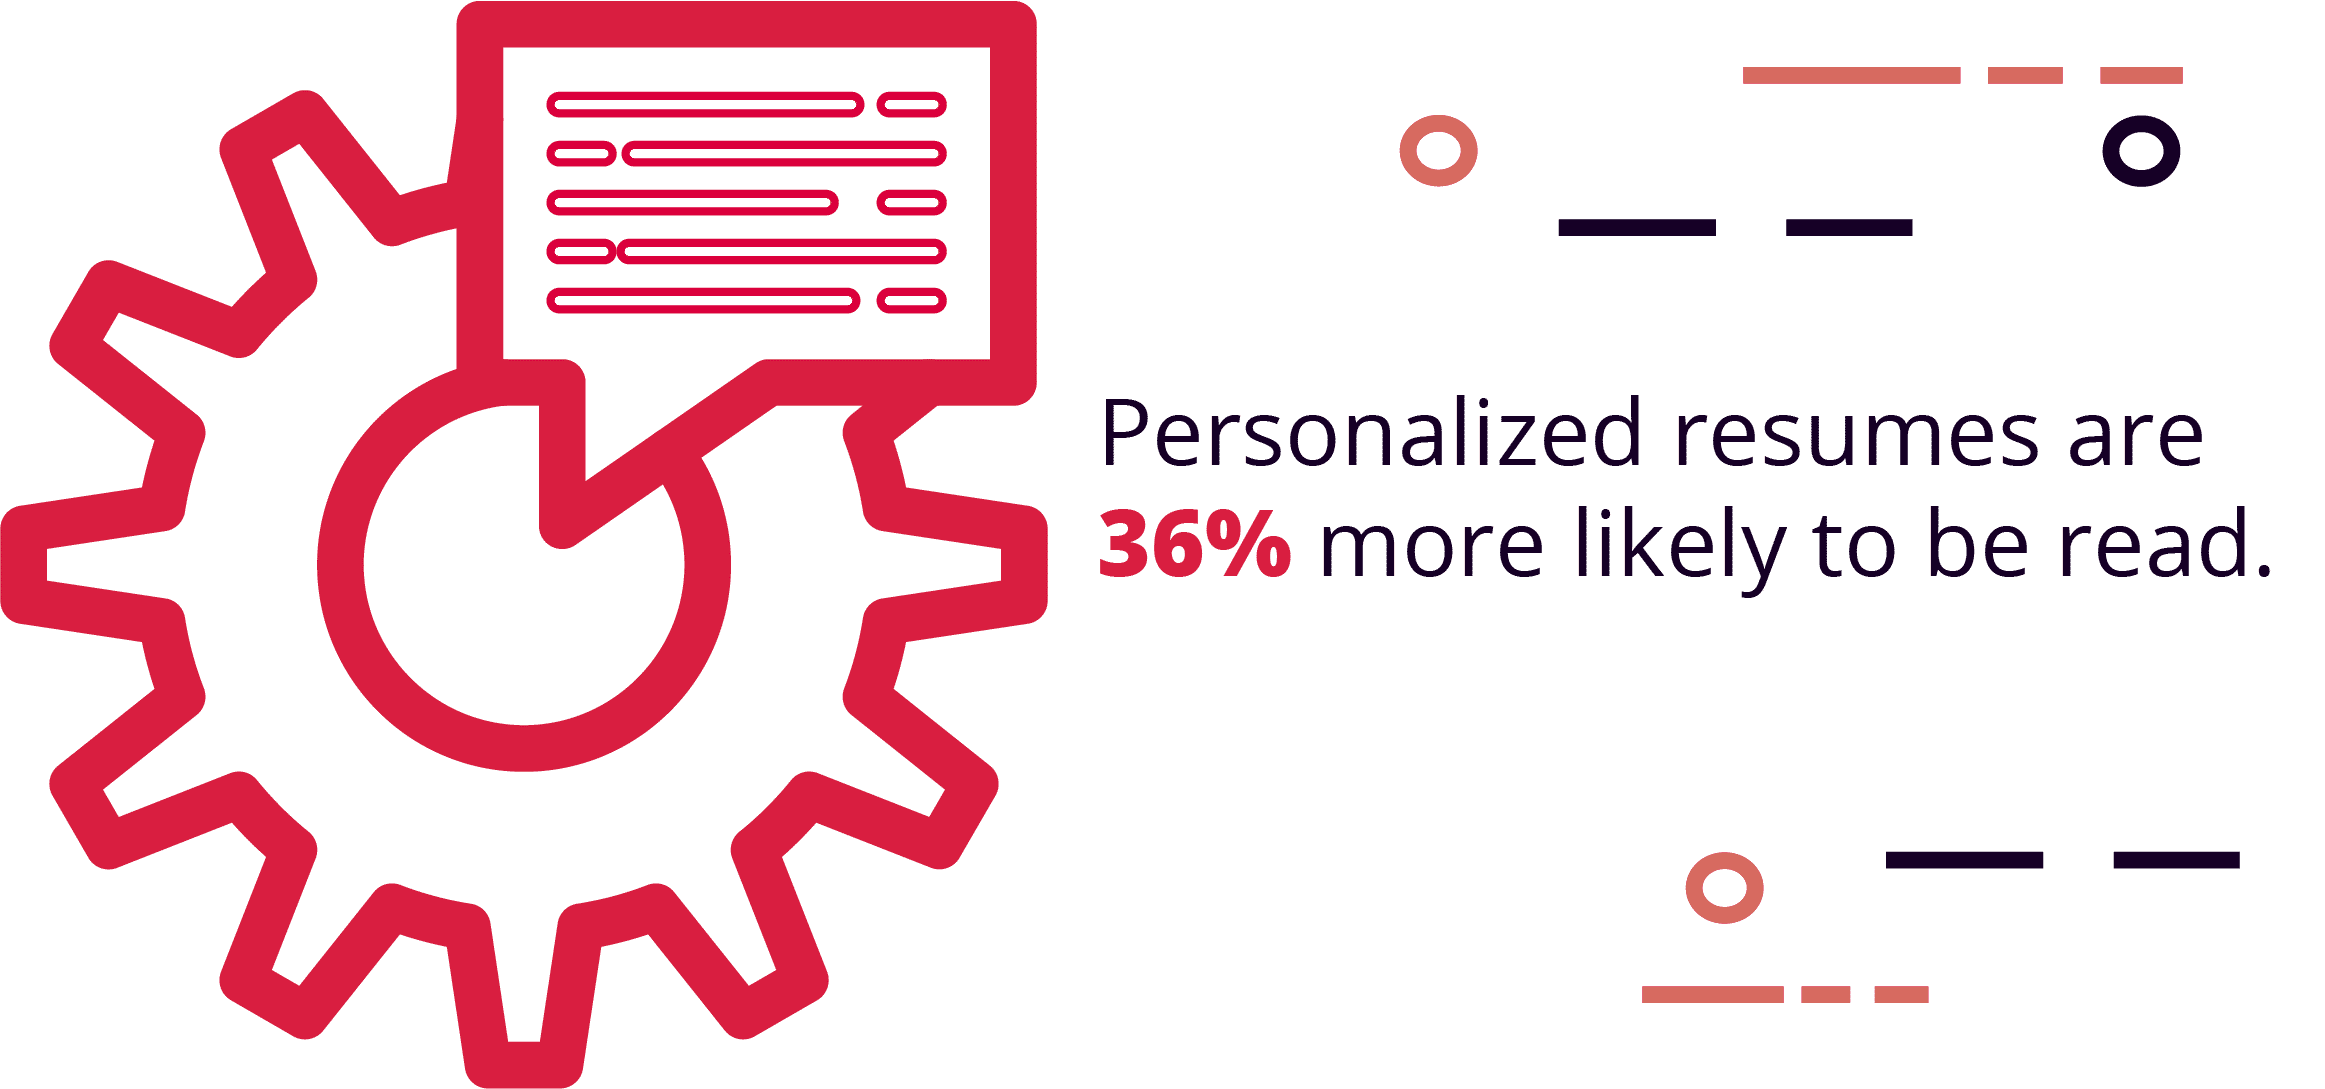 Personalizing your resume for the job can make it 36% more likely your resume is read